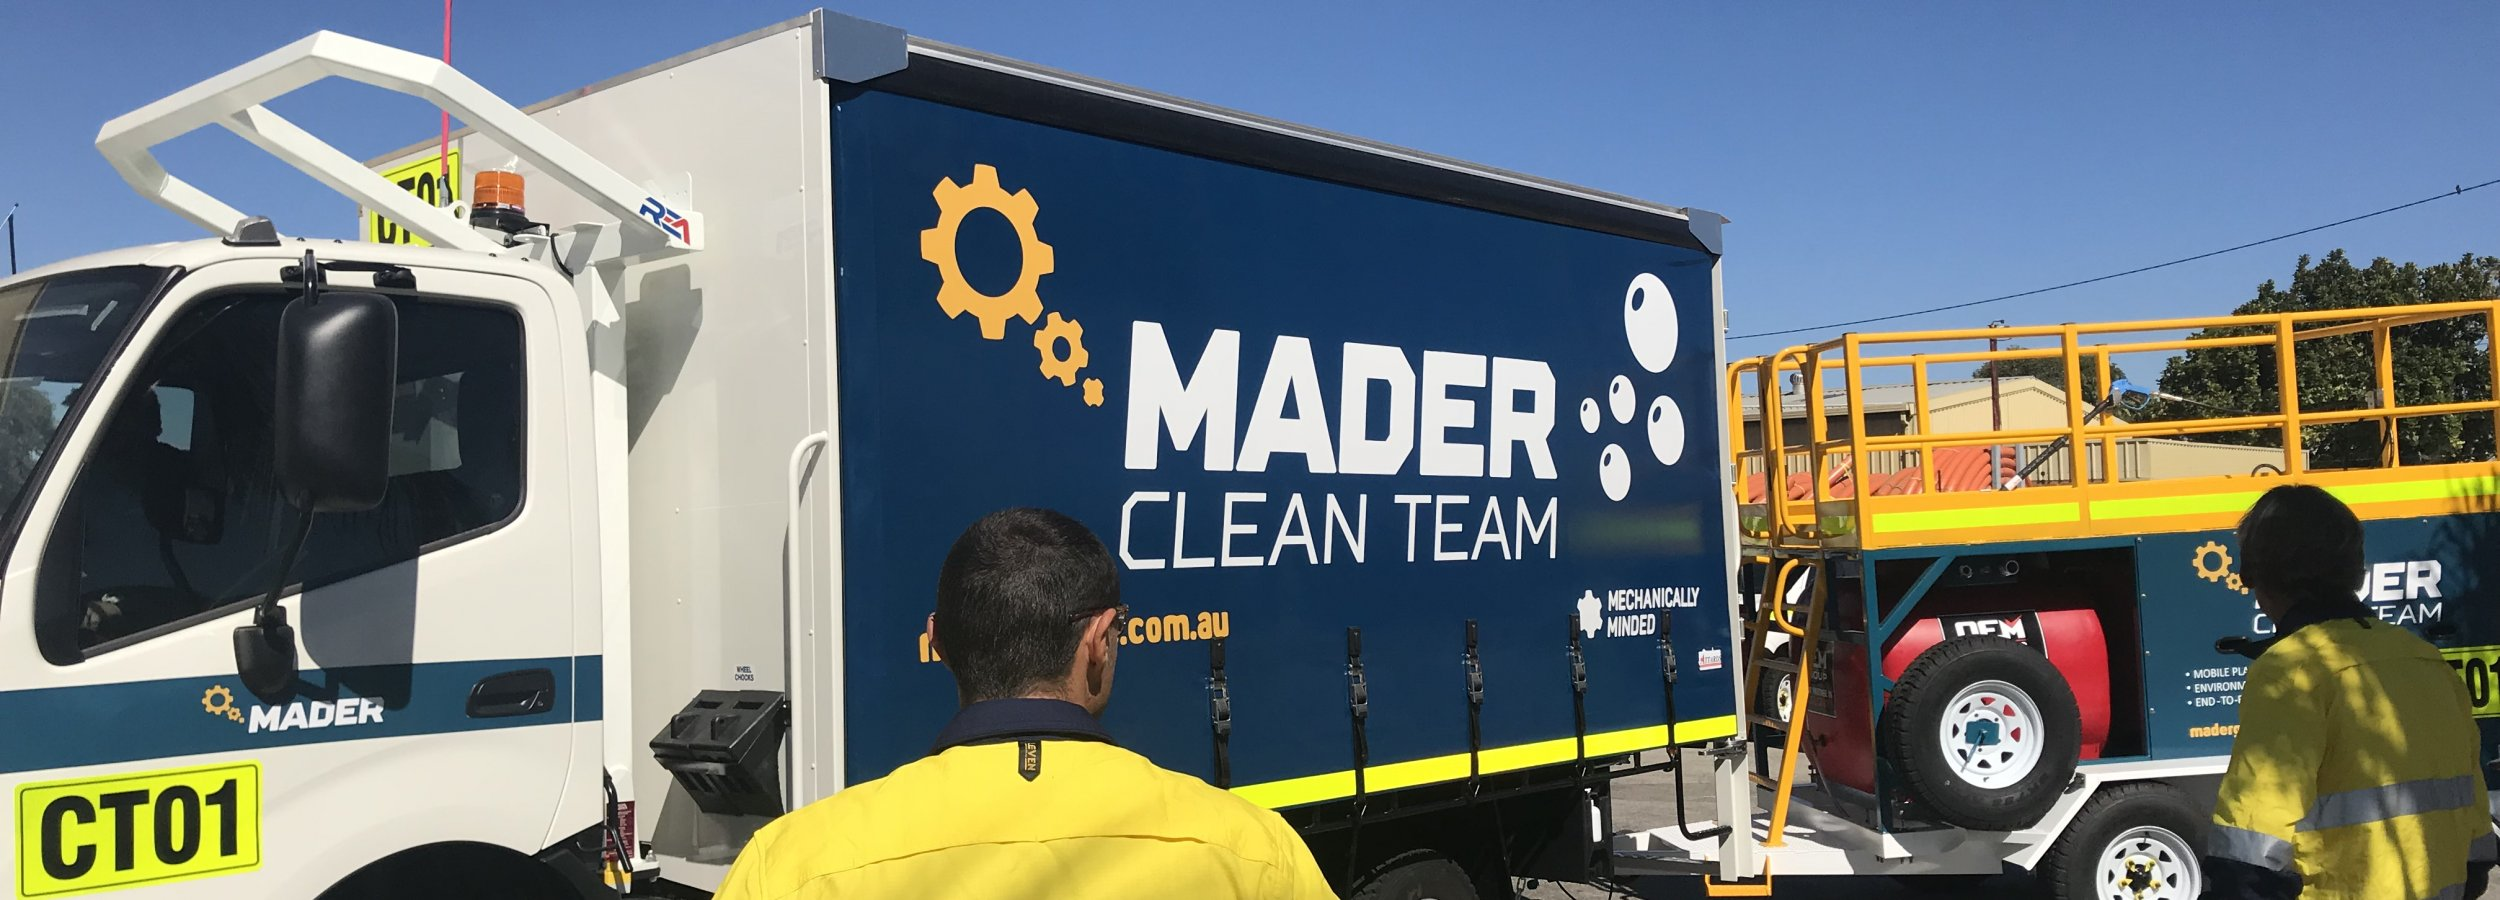 Mader Clean Team image